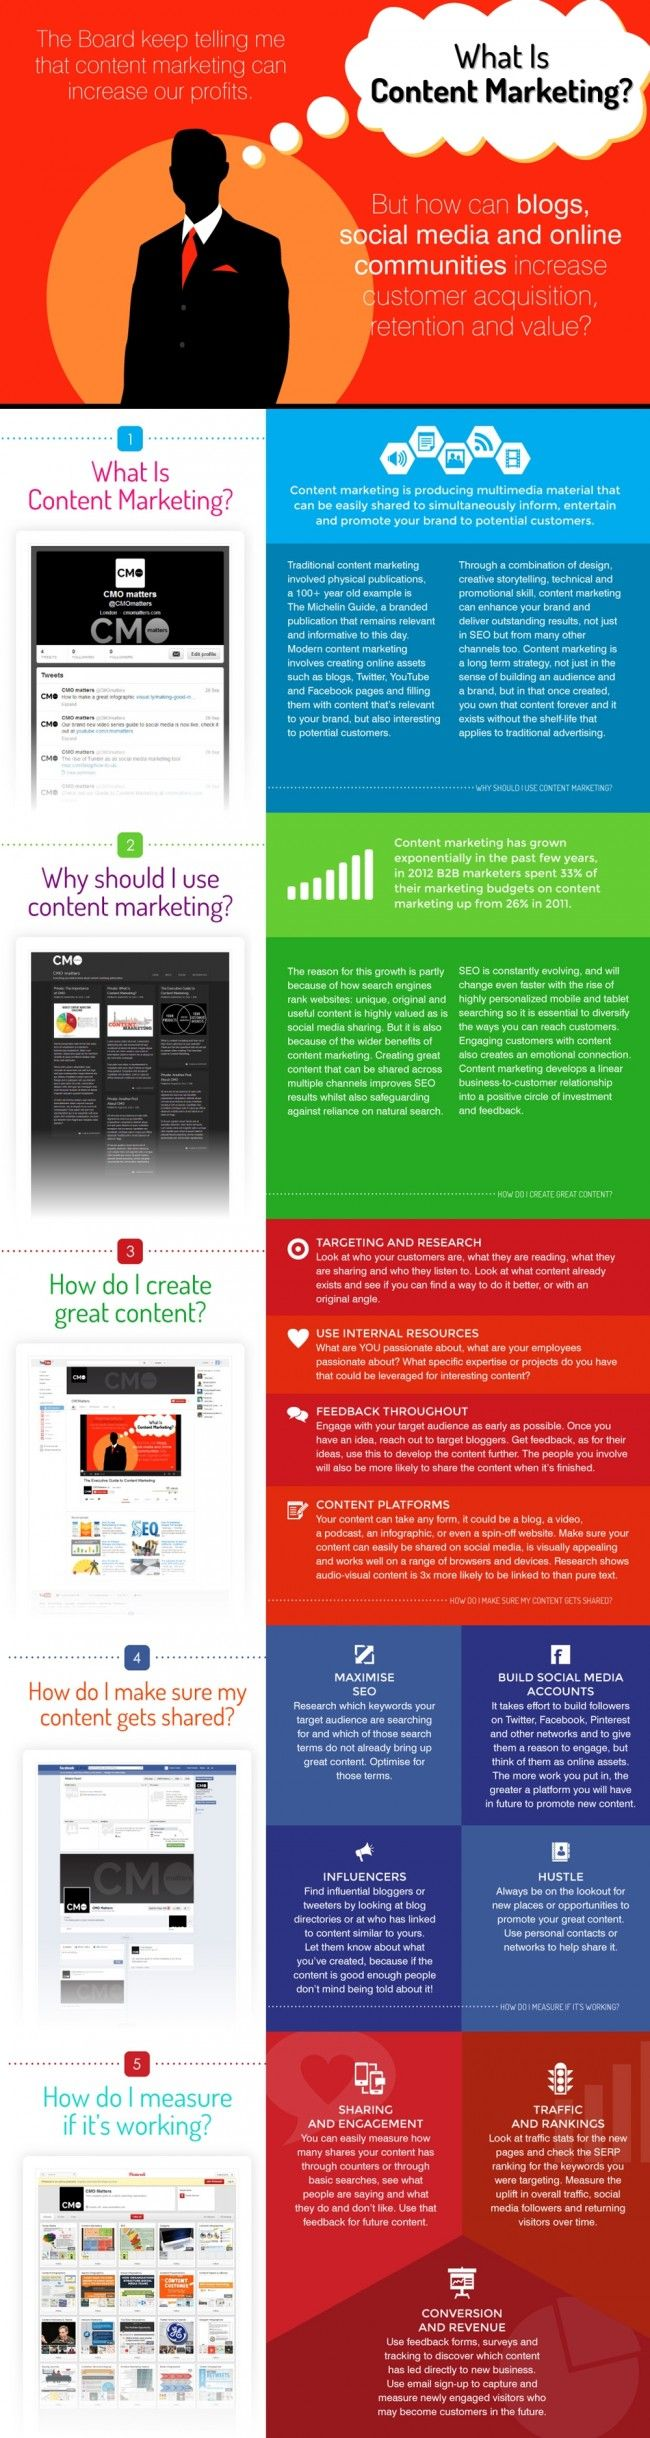 What is #contentmarketing? This #infographic explains the subject well! http://www.dotrising.com/2013/10/28/infographic-highlights-the-benefits-of-content-marketing/ via @dotrising